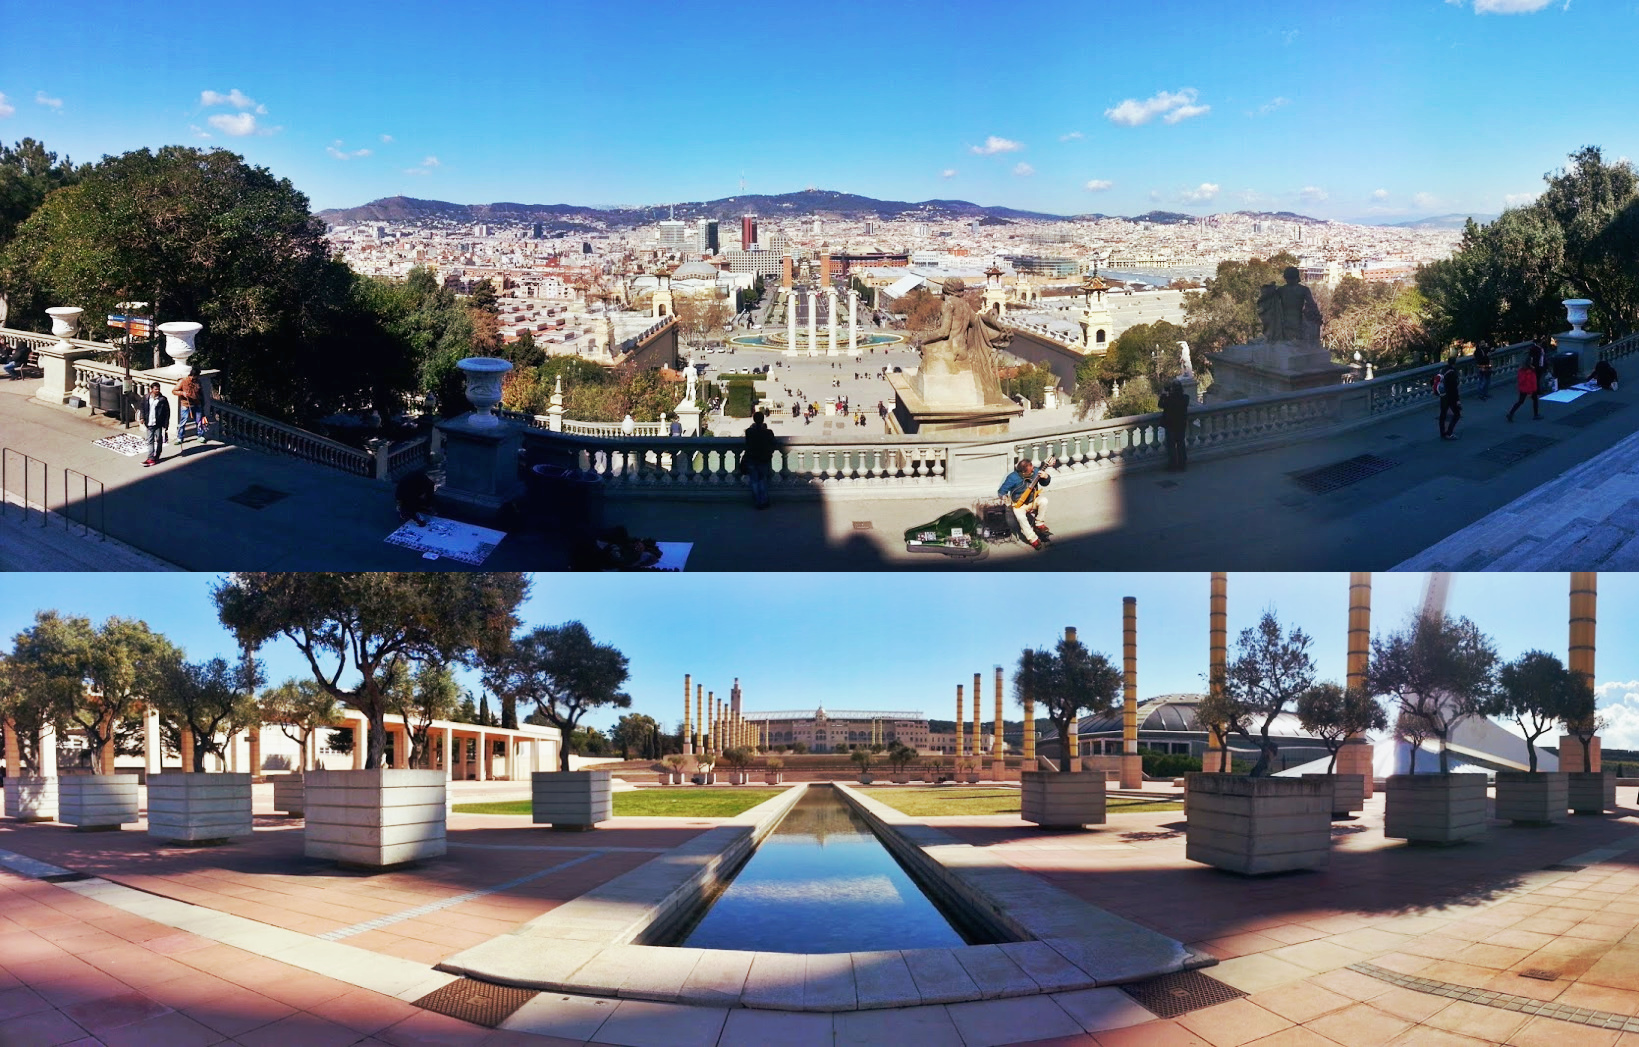 Panorama images of Barcelona.